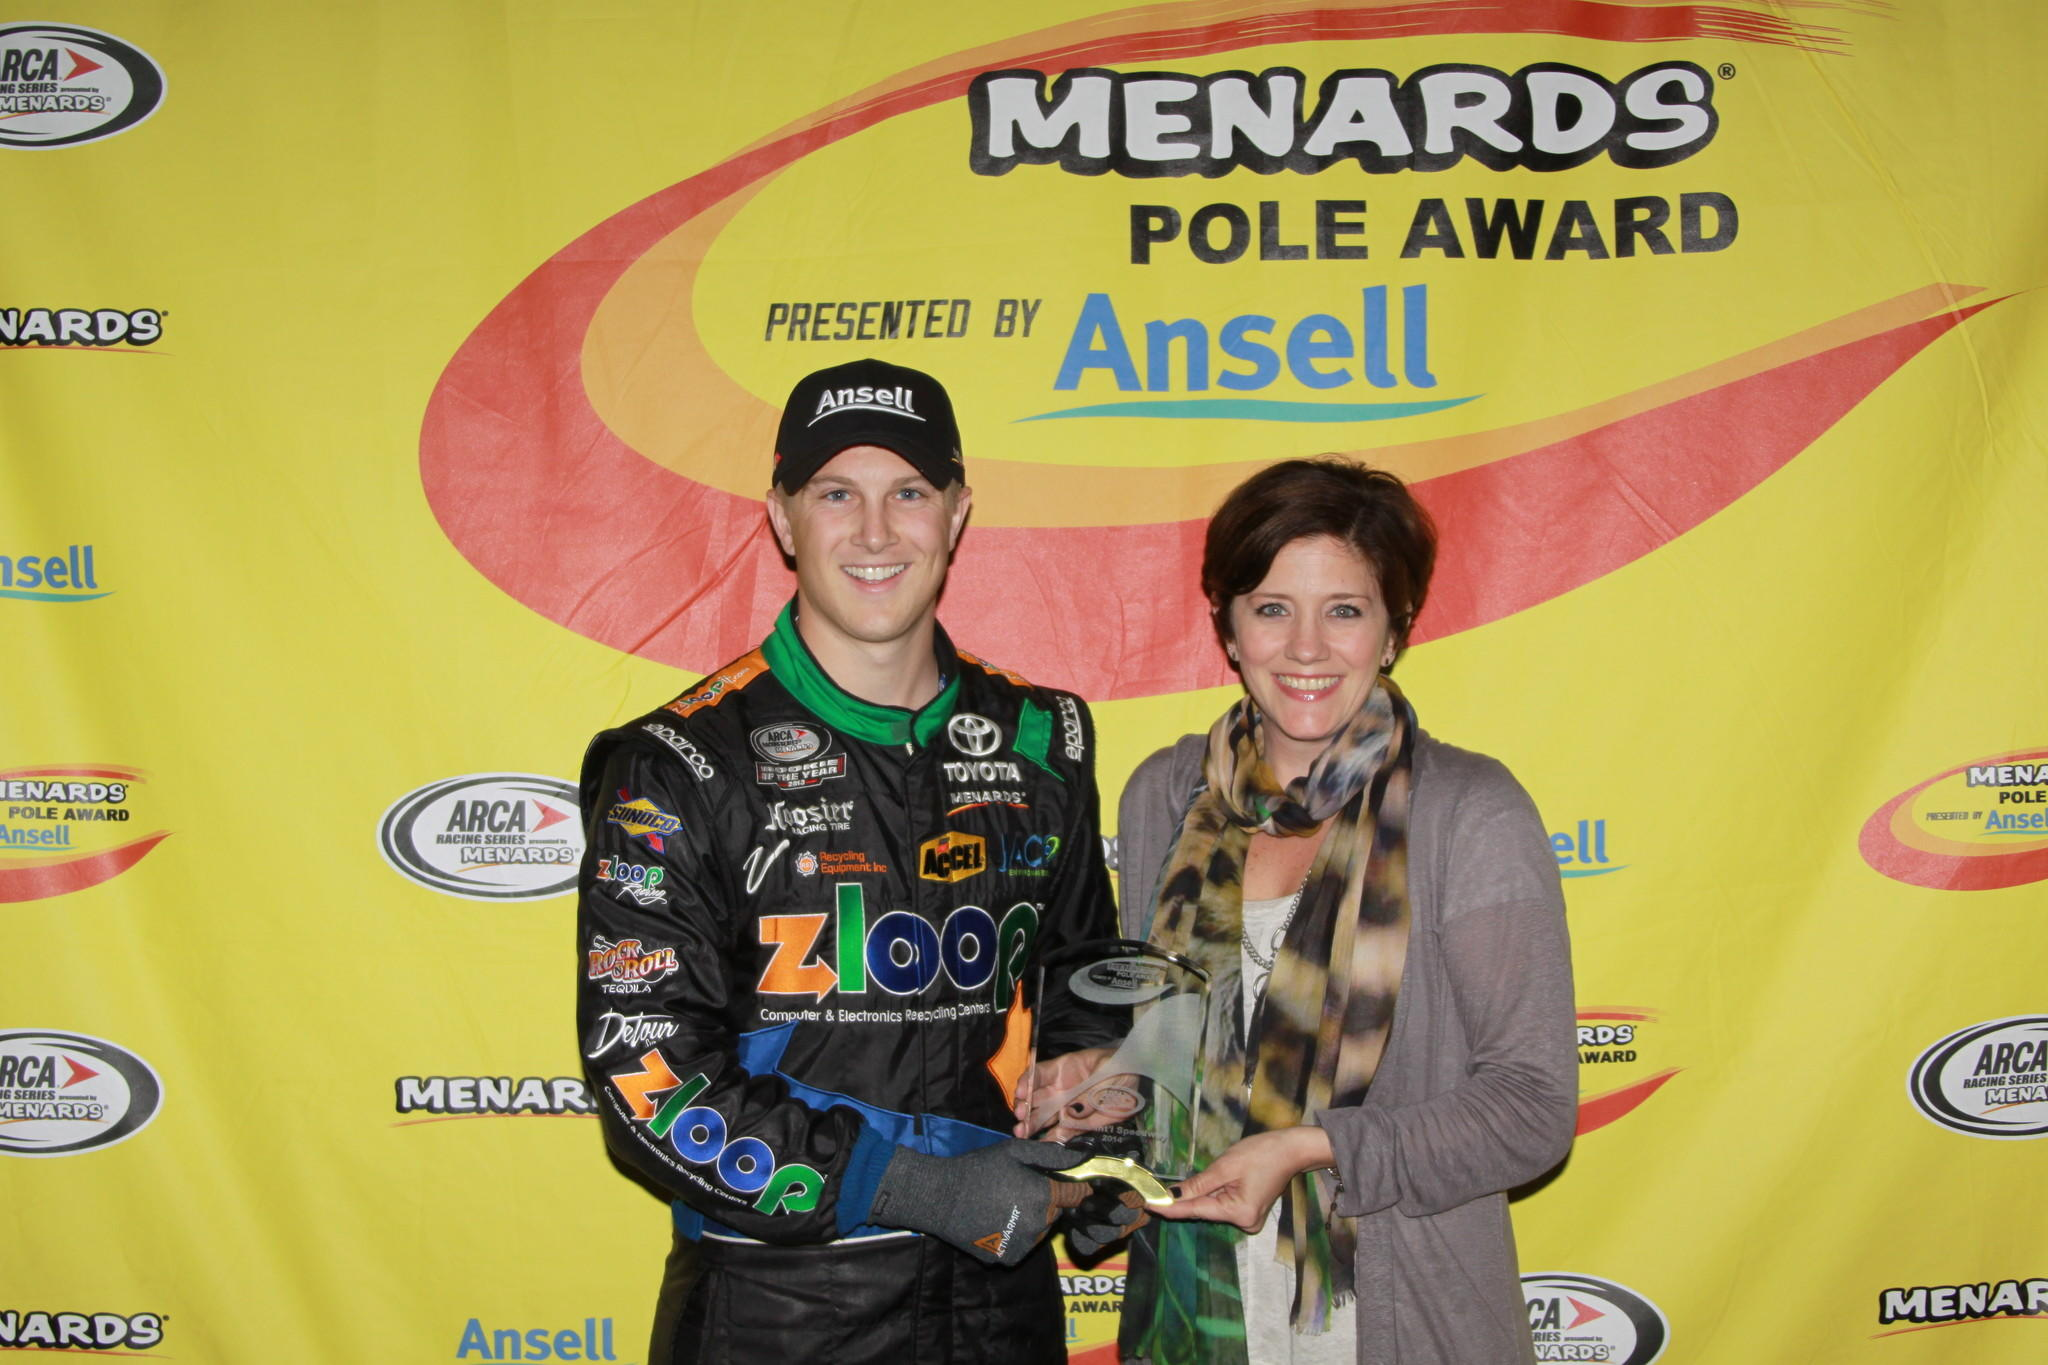 Justin Boston is pictured with Kerry Allen, territory manager with Ansell, after his third career Menards Pole Award presented by Ansell.